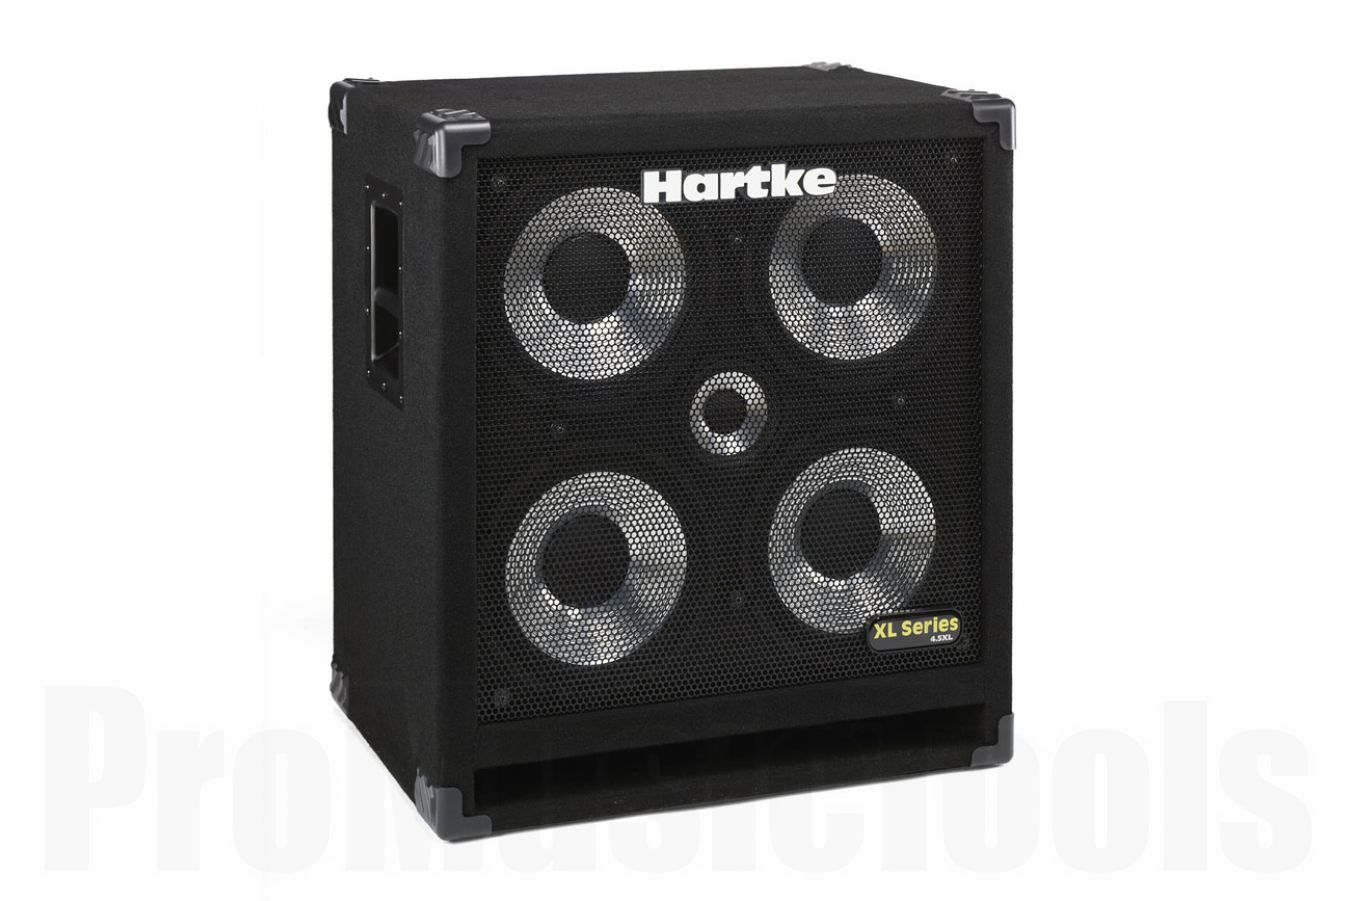 Hartke 4.5XL box